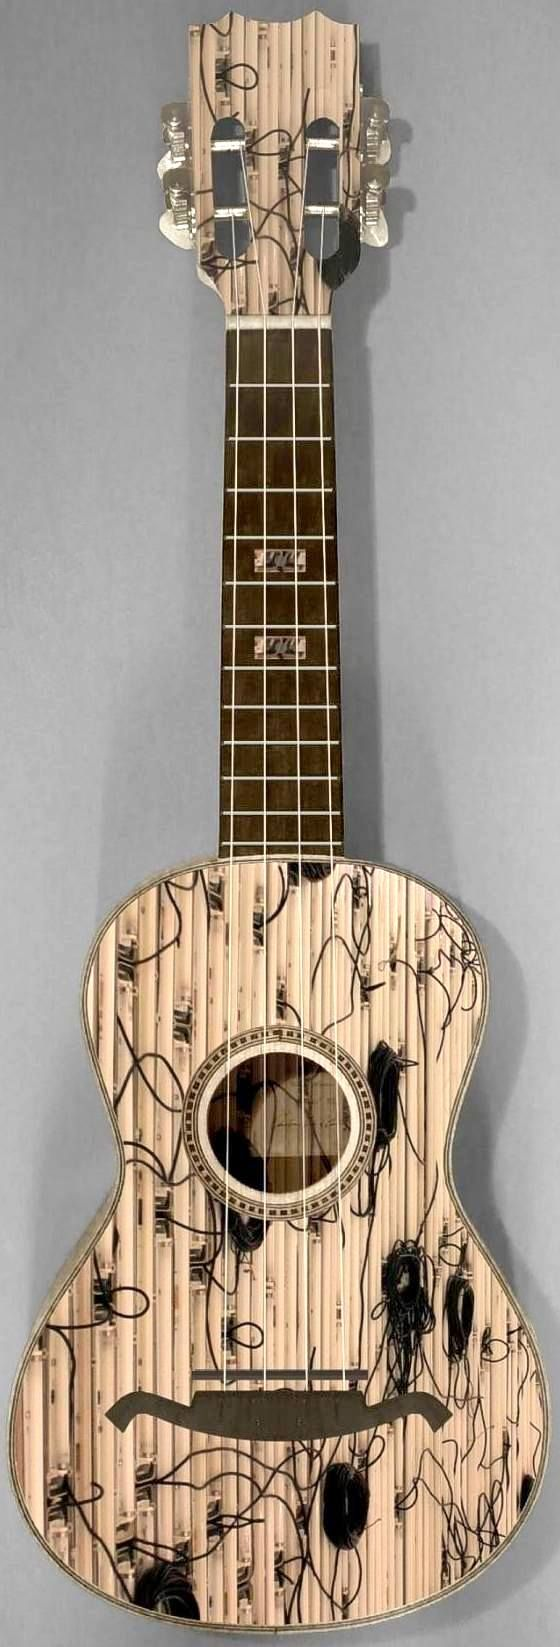 Pedro Cabrita Reis decorated Cacaquinho from the MUSEU CAVAQUINHO exibition --- https://www.pinterest.com/lardyfatboy/